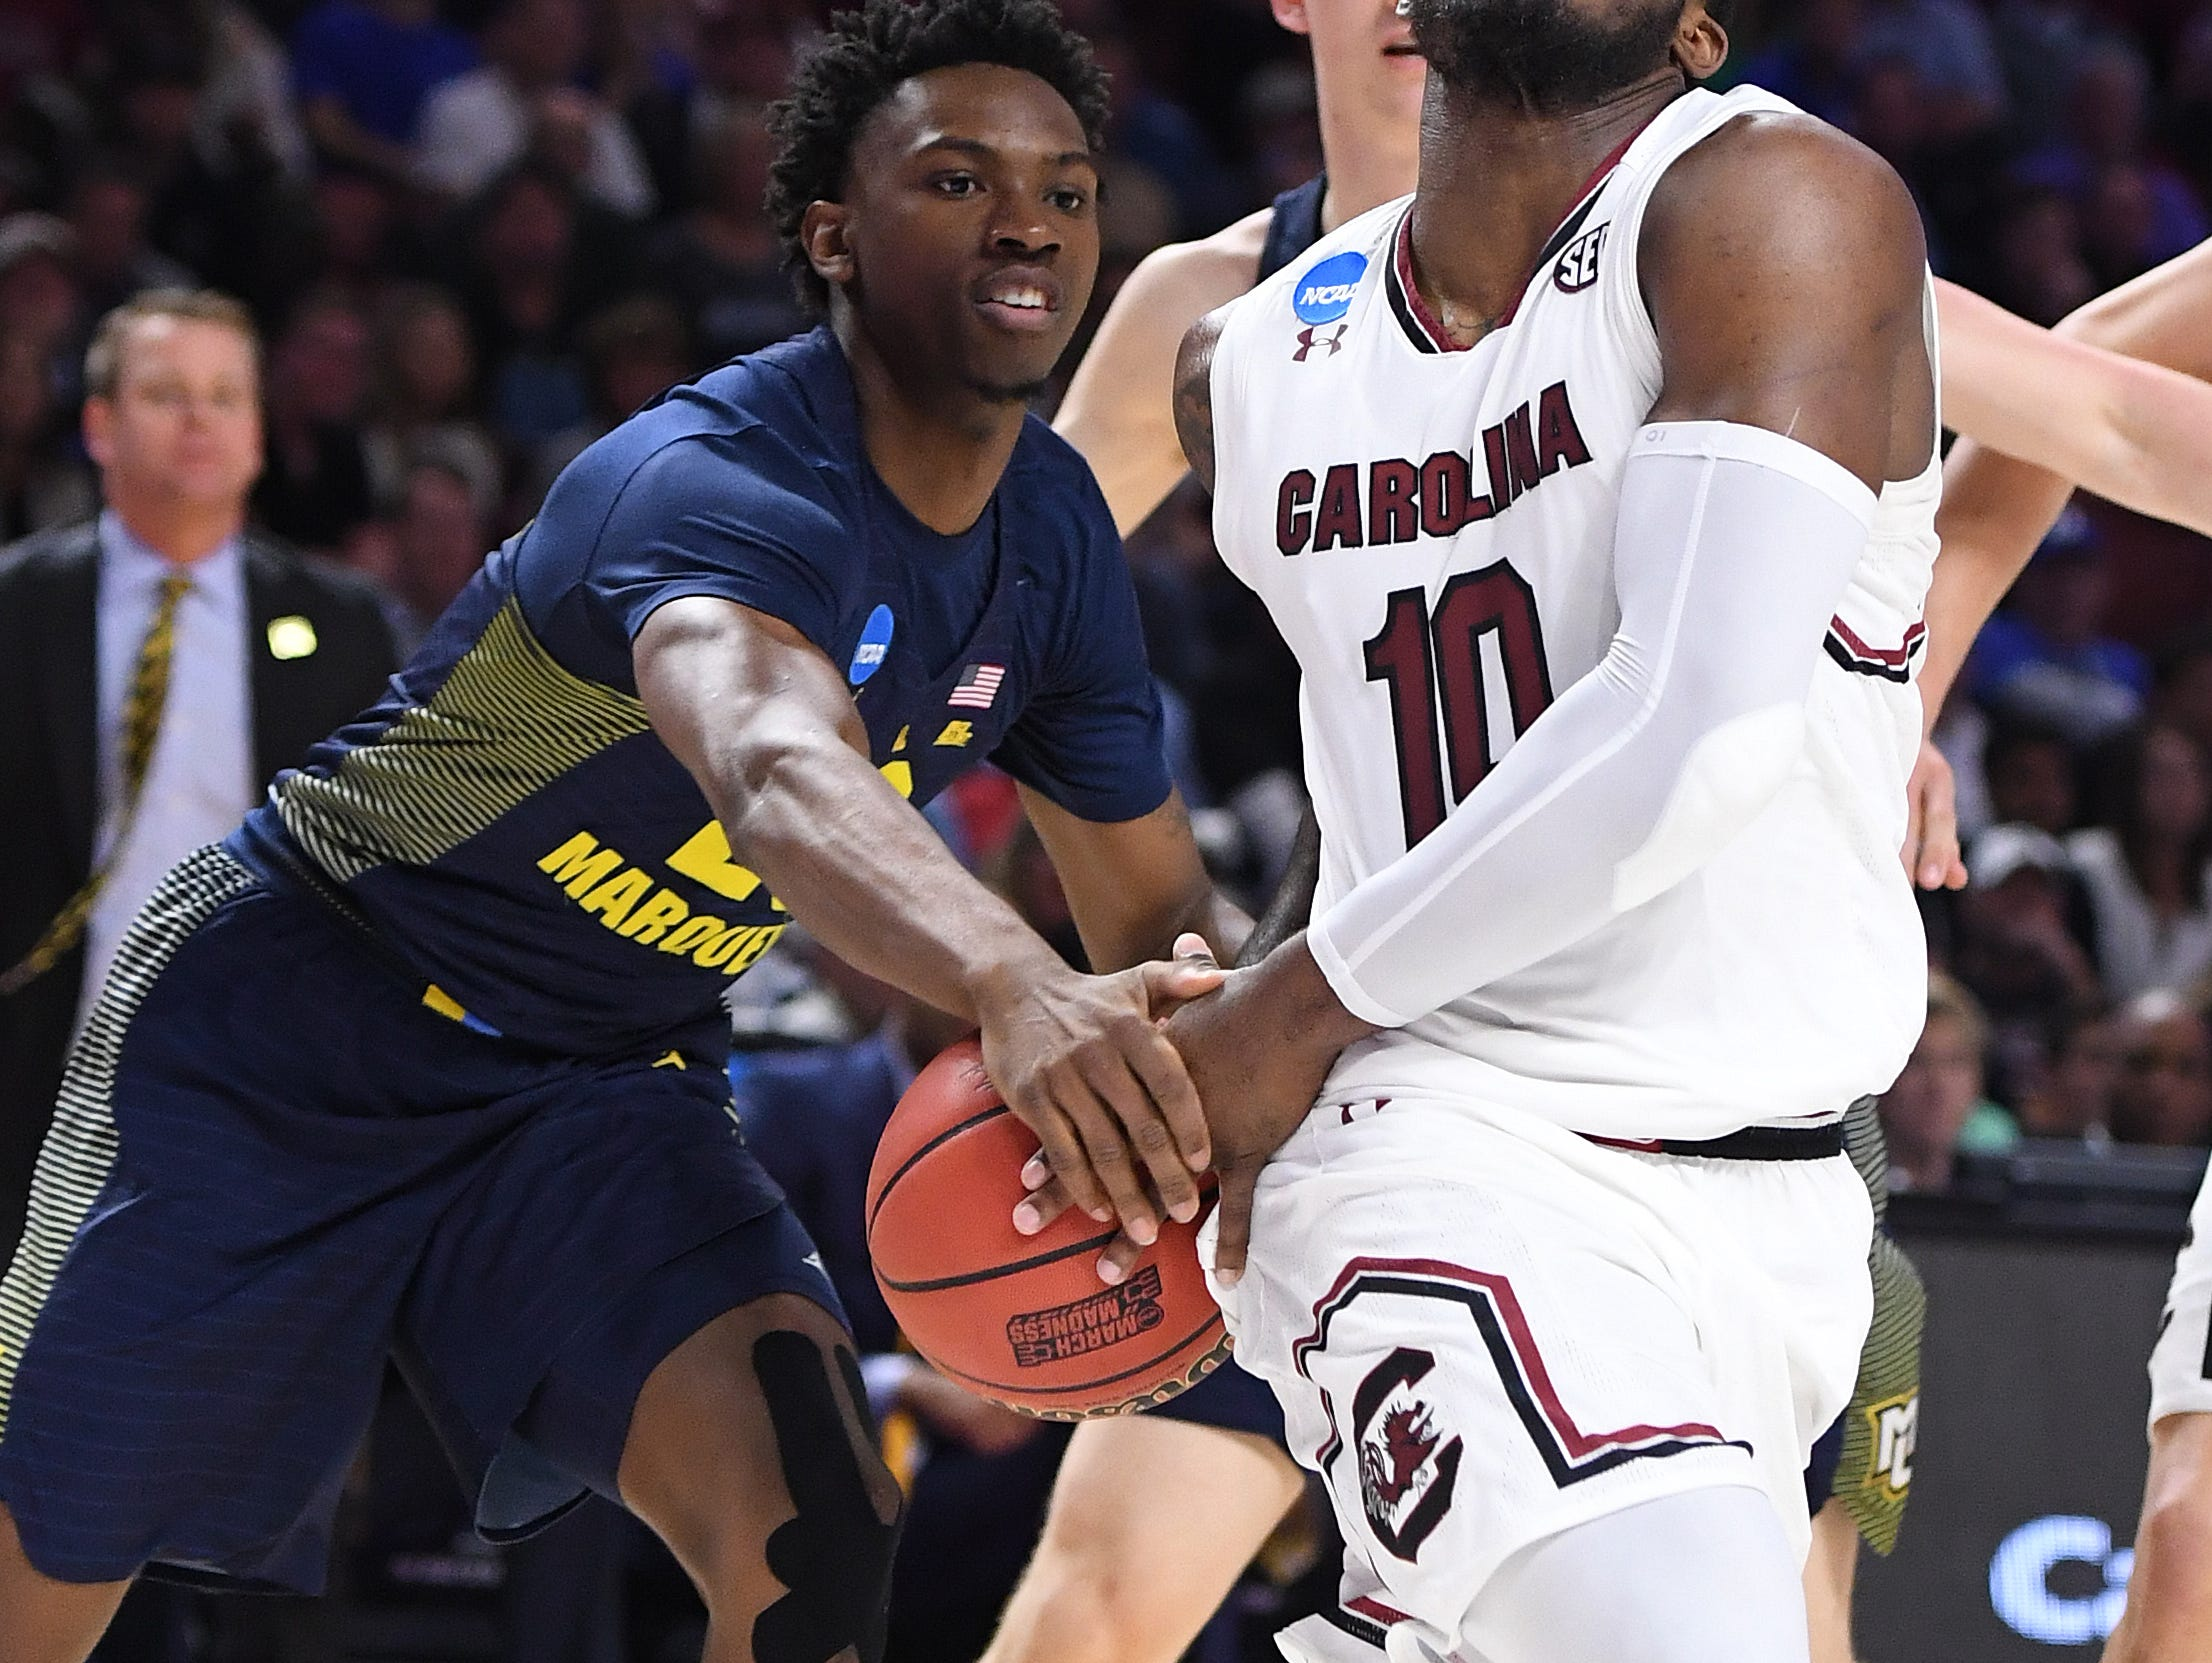 Marquette guard Jajuan Johnson (23) strips the ball from South Carolina guard Sindarius Thornwell (0) during the 1st round of the NCAA Tournament at Bon Secours Wellness Arena in downtown Greenville on Friday, March 17, 2017.